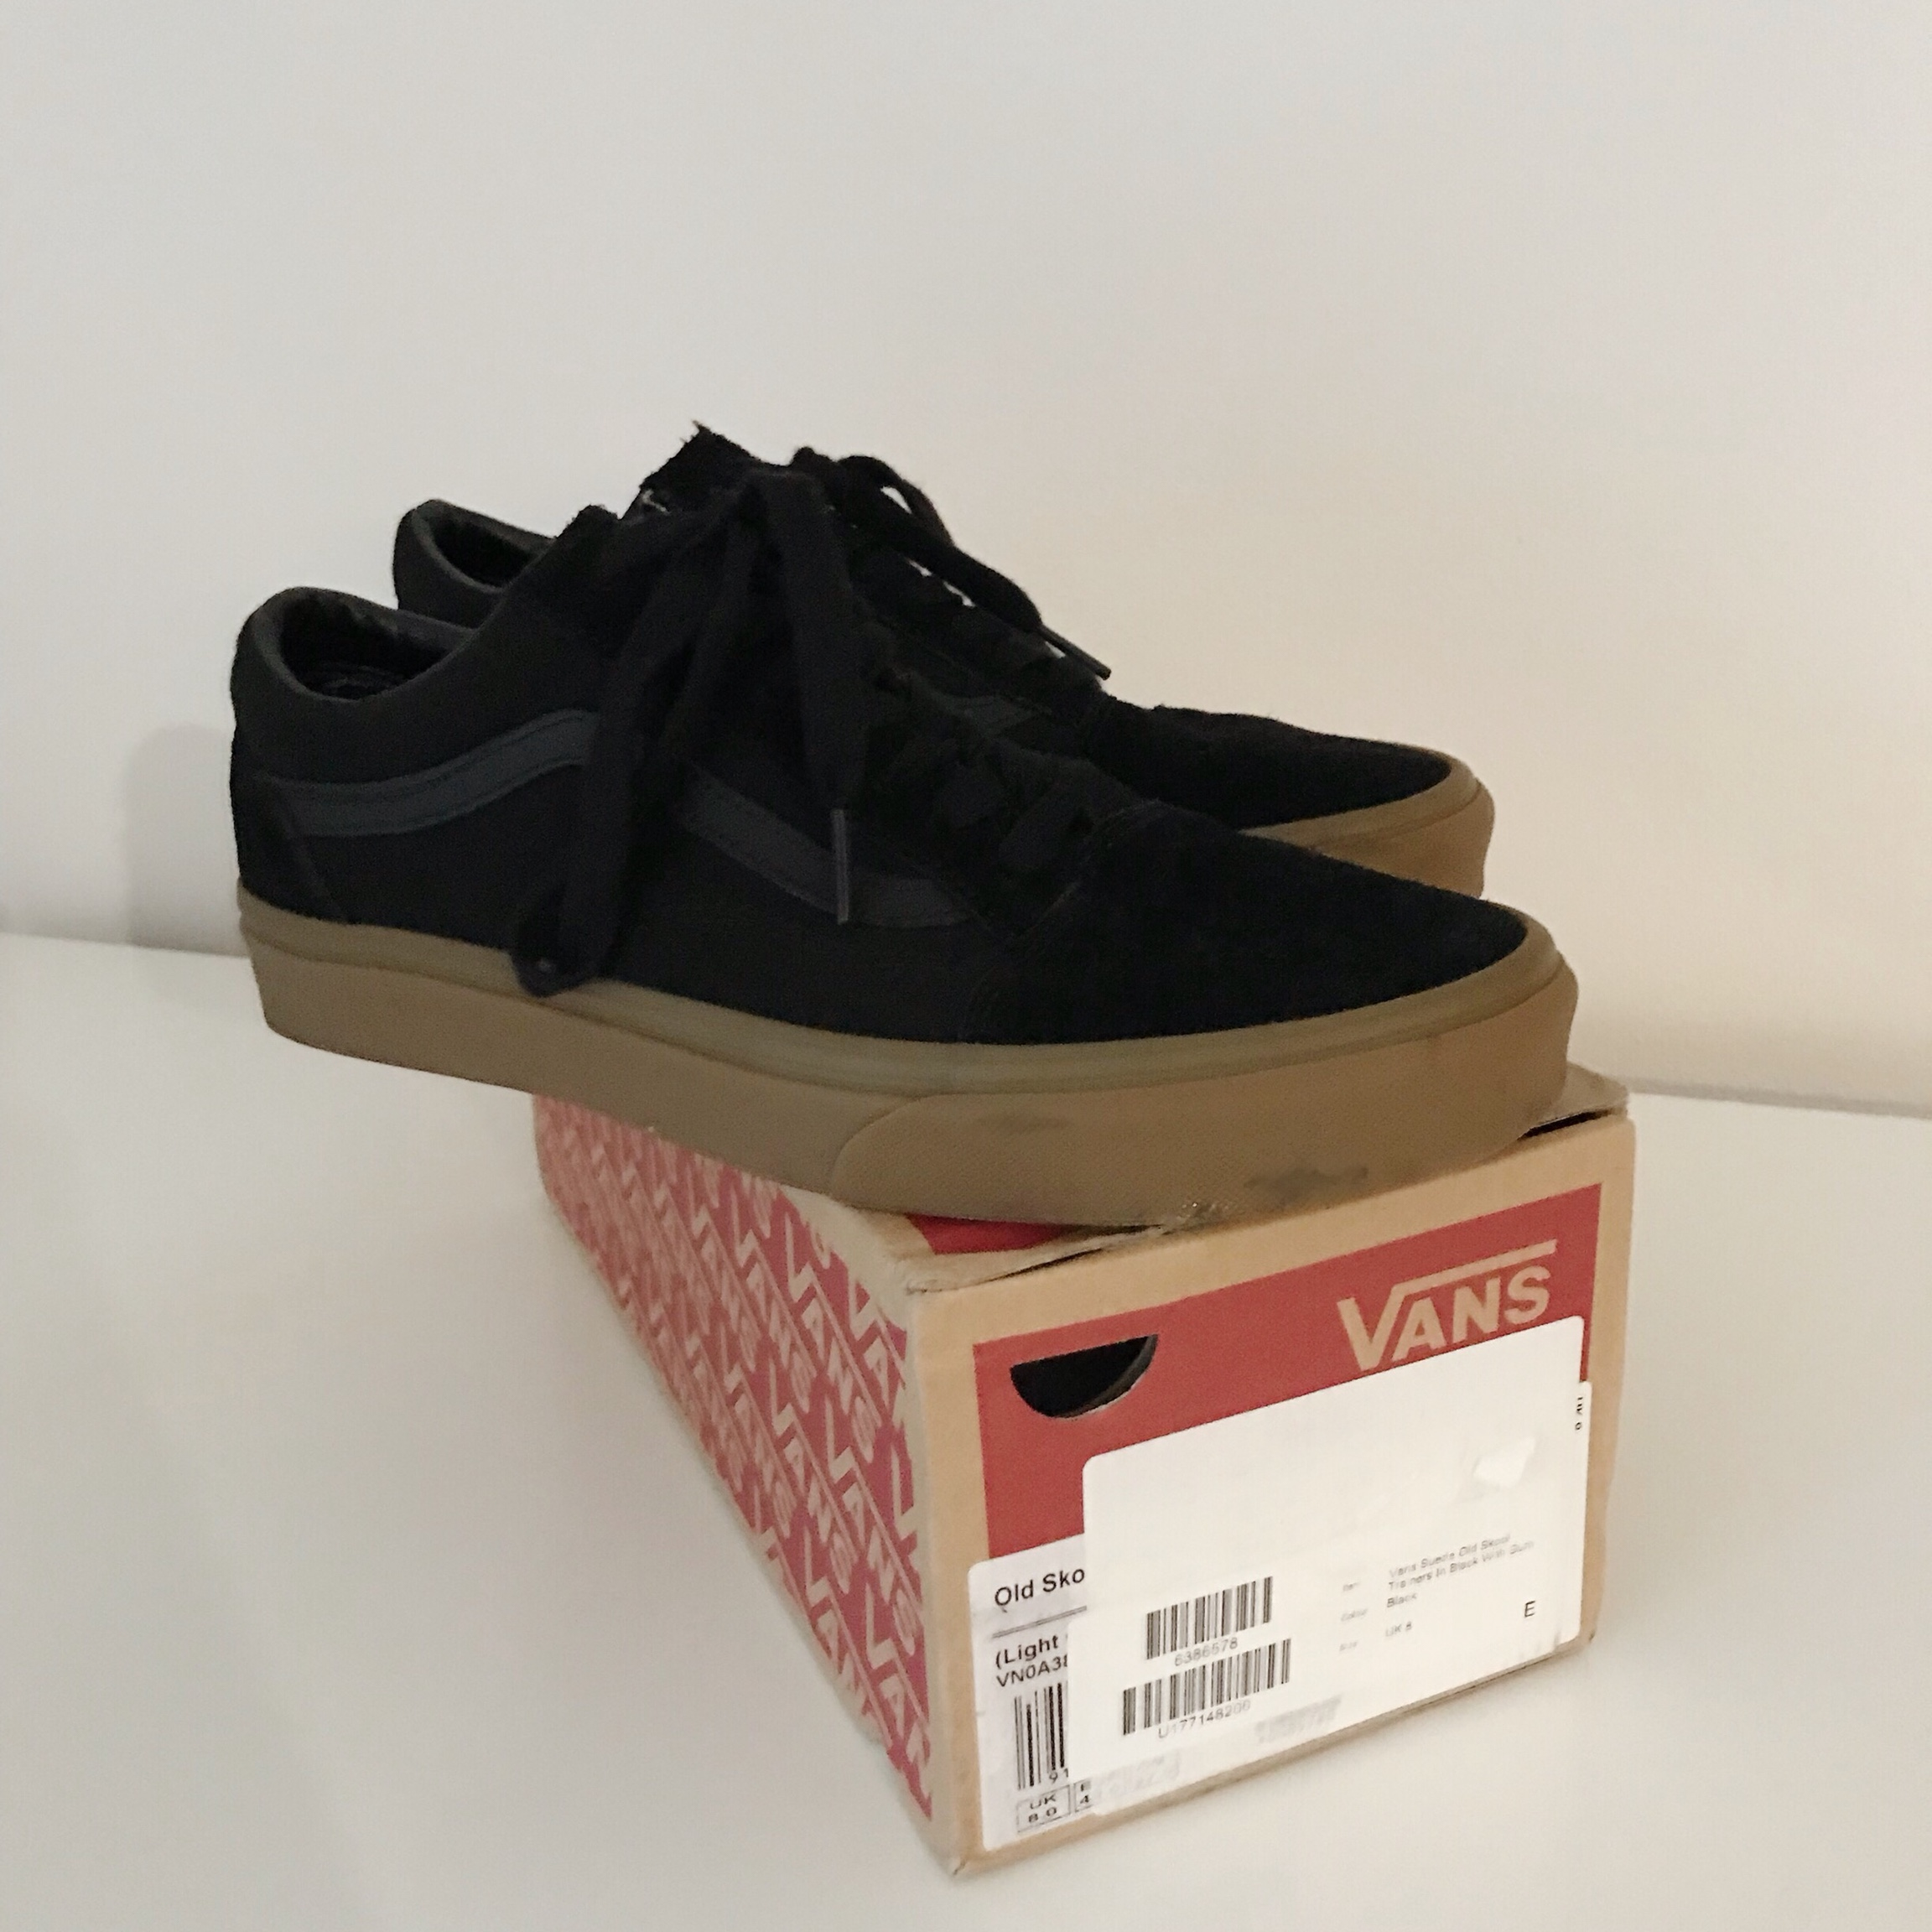 Black suede old skool vans trainers with gum sole | Depop